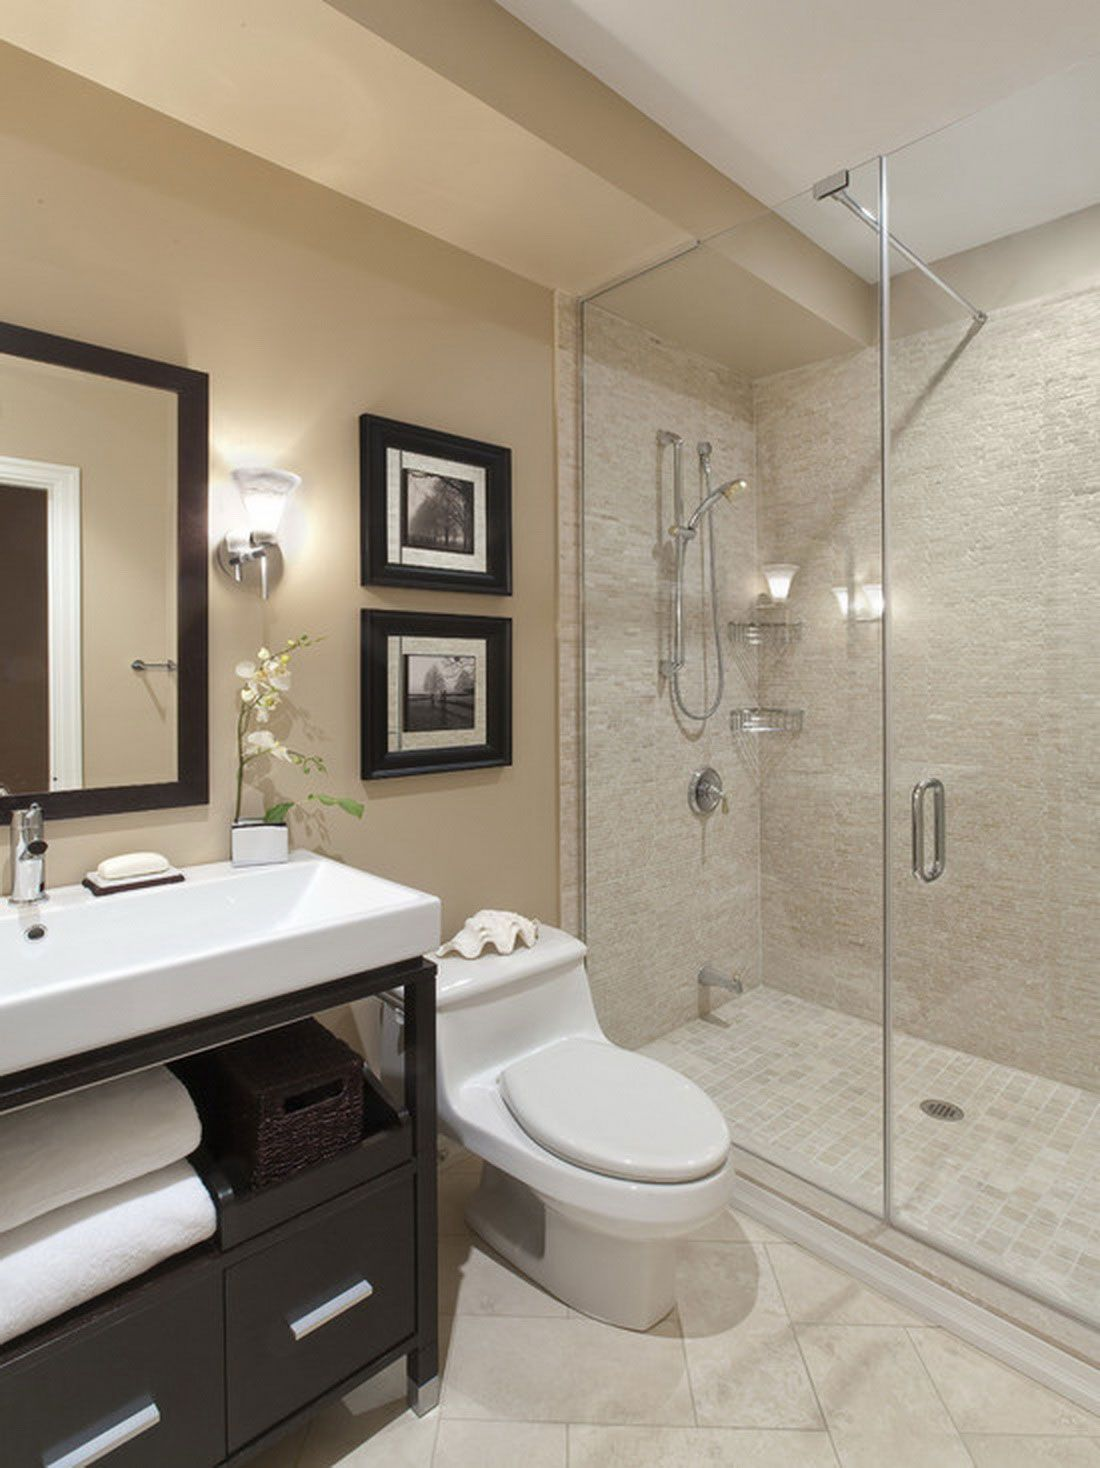 Charmant 15 Extraordinary Transitional Bathroom Designs For Any Home